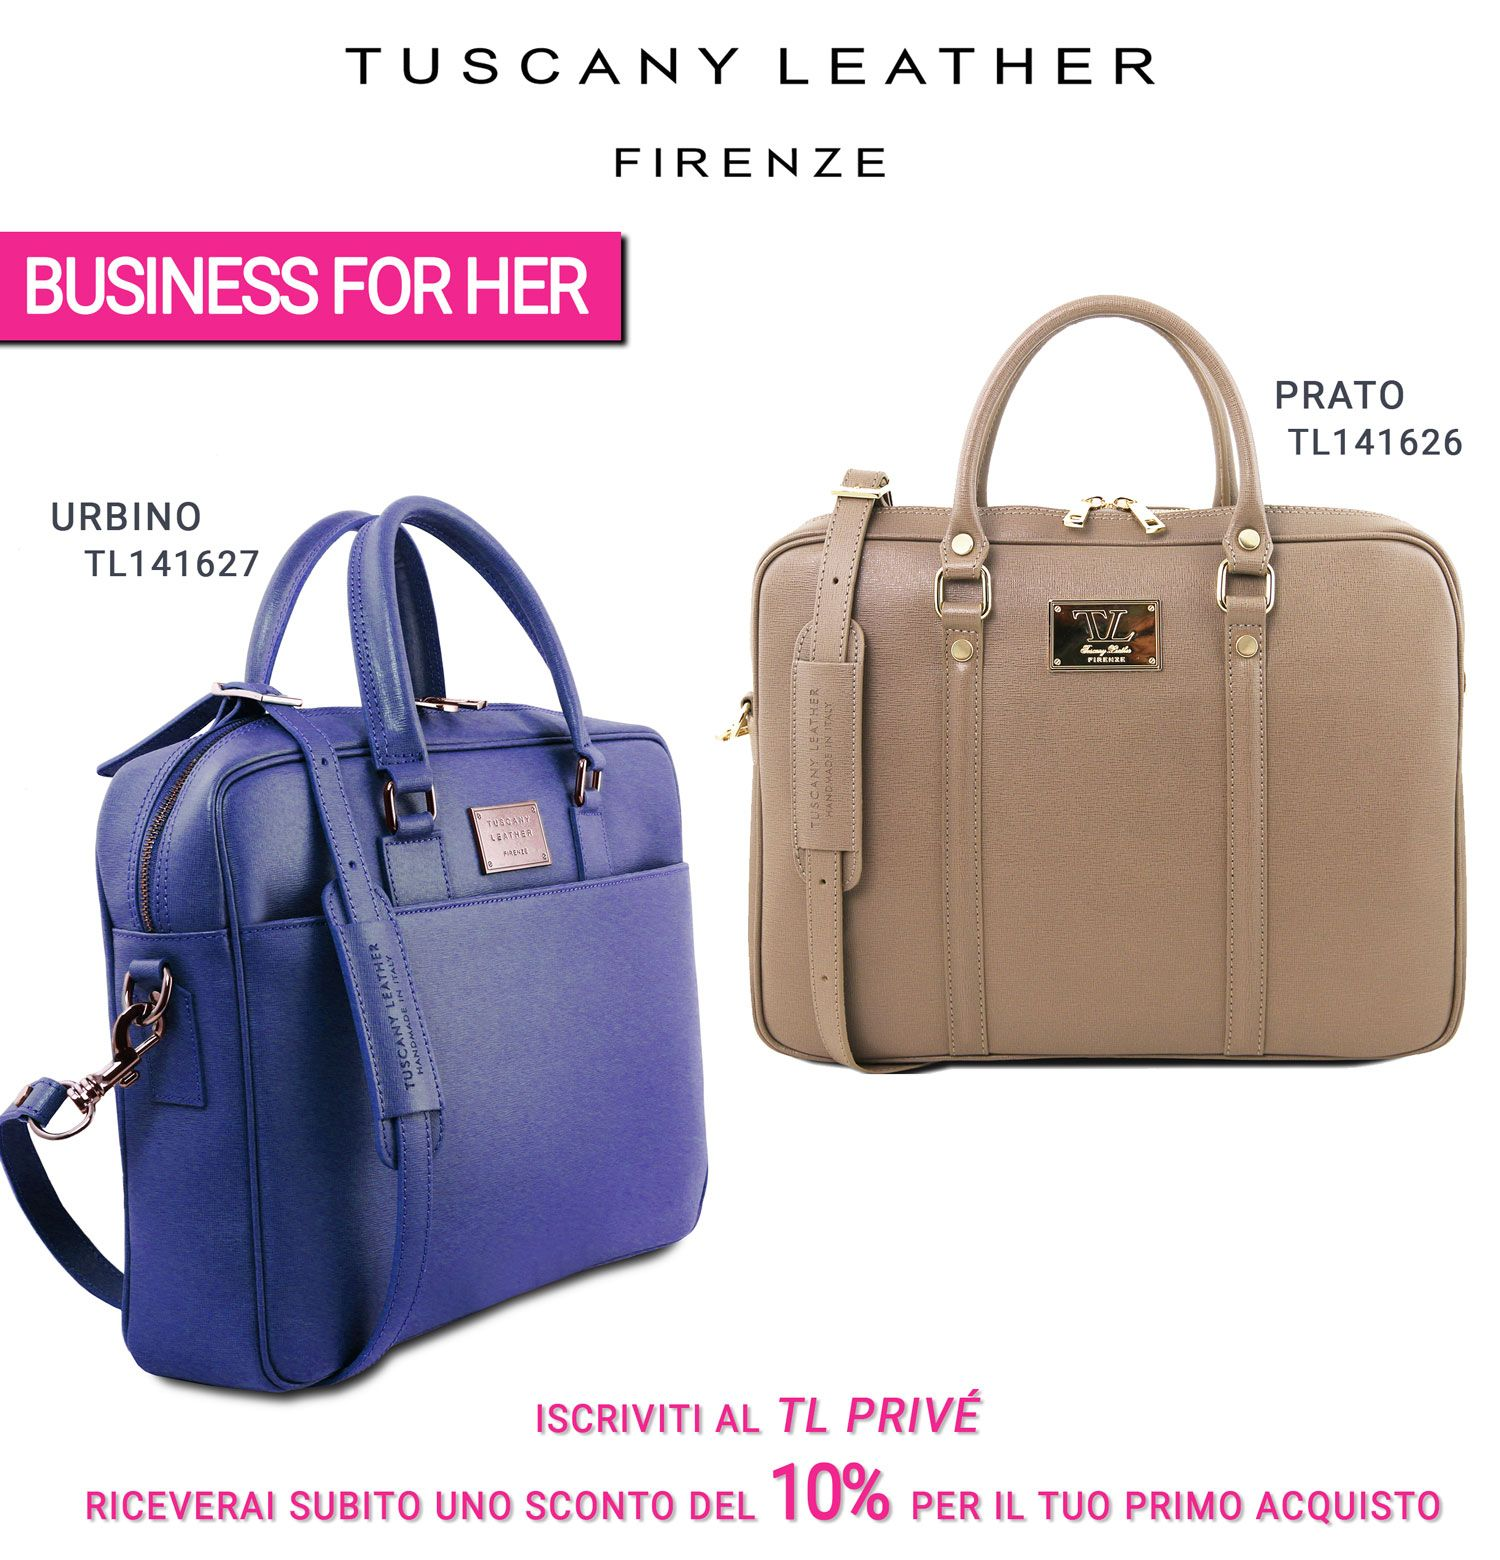 Join TL PRIVÉ. You will receive a 10% discount on your first purchase.